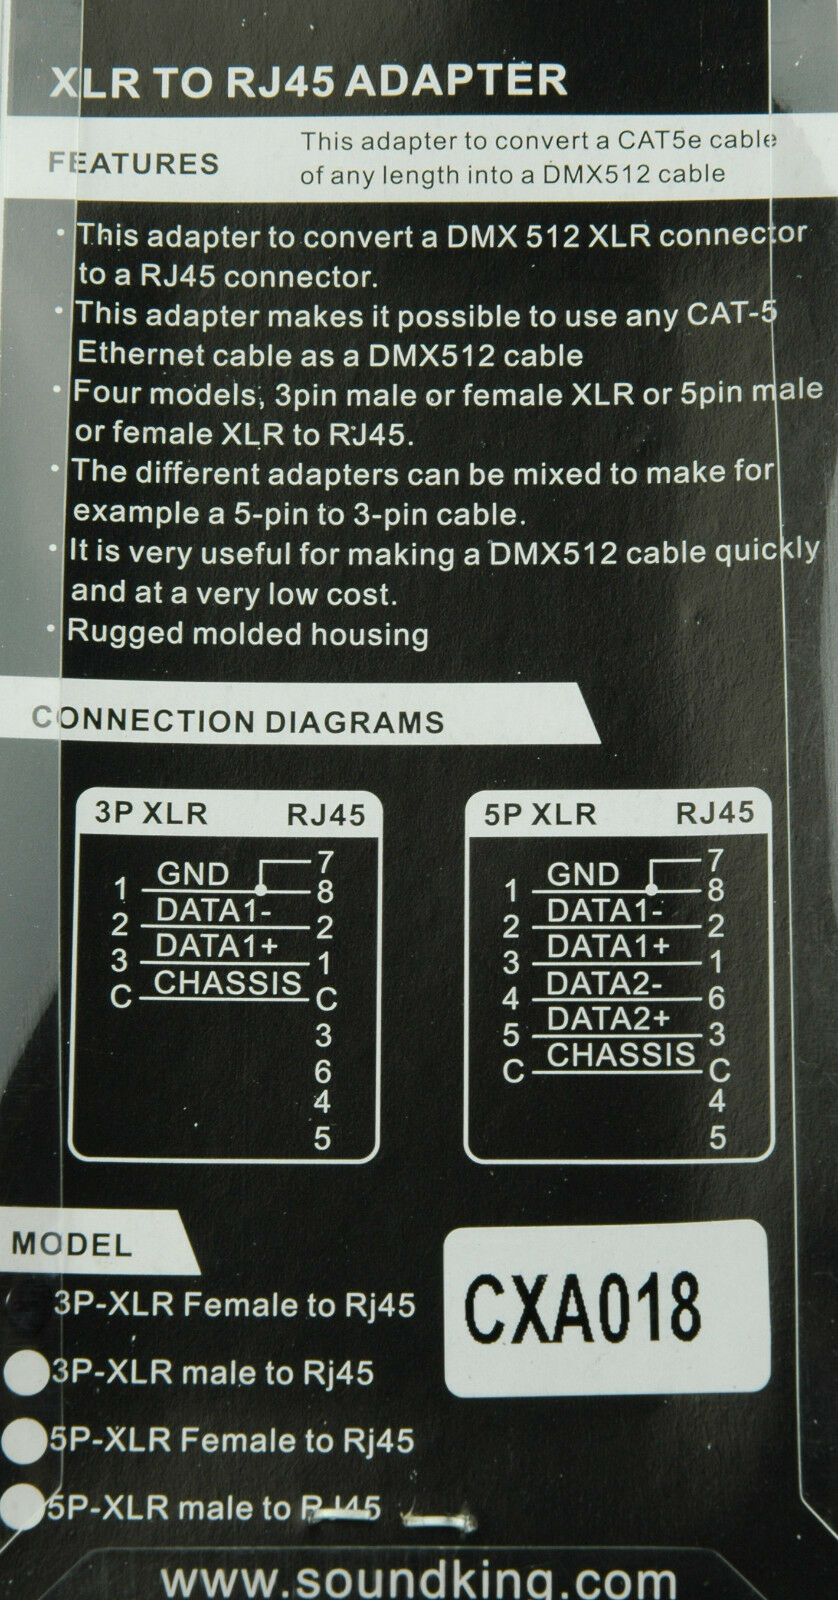 3 Pin Female Xlr To Rj45 Adaptor Converts Cat 5 Ethernet Cable Dmx Wiring Diagram Connector